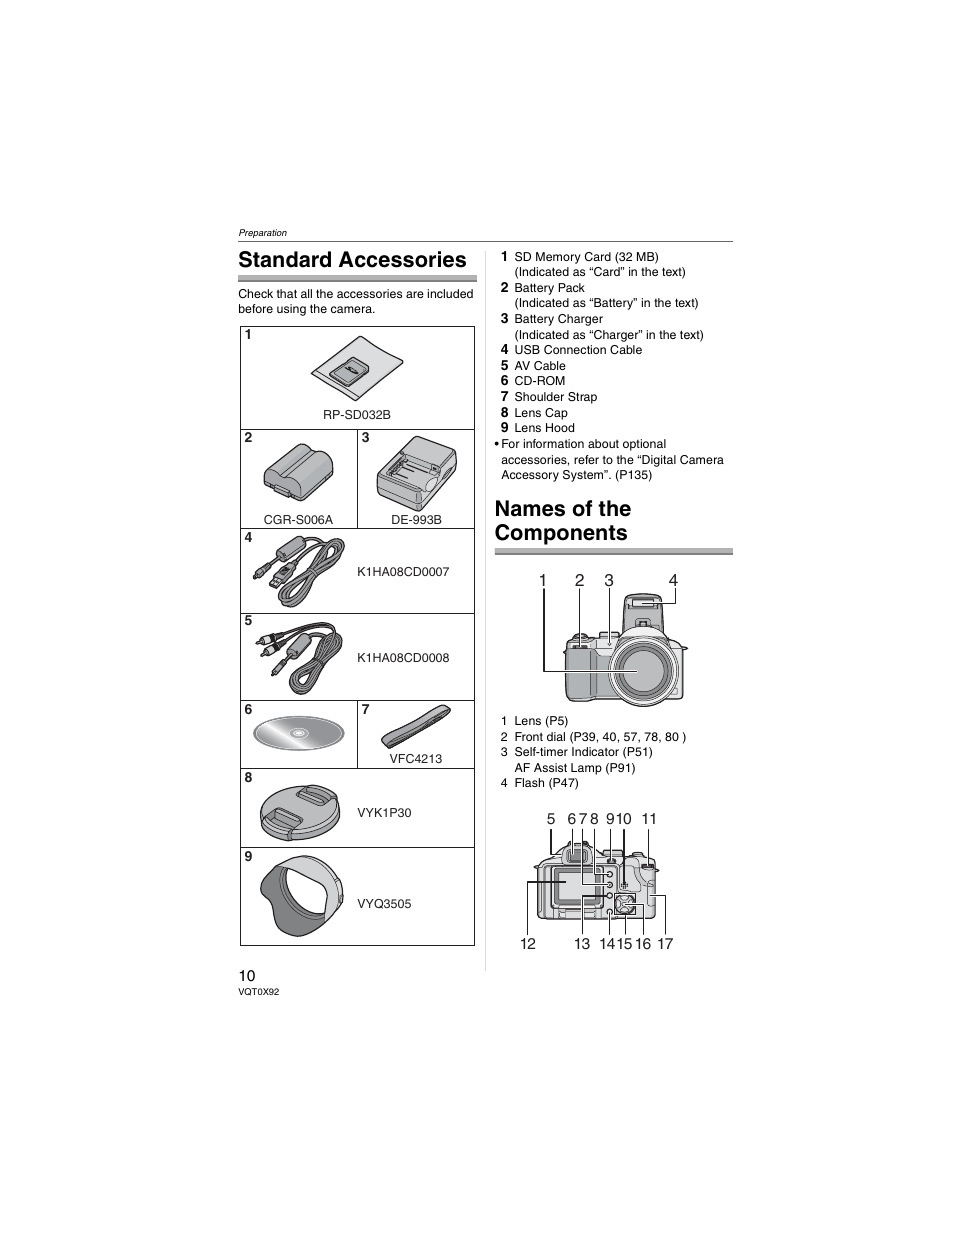 Preparation, Standard accessories, Names of the components